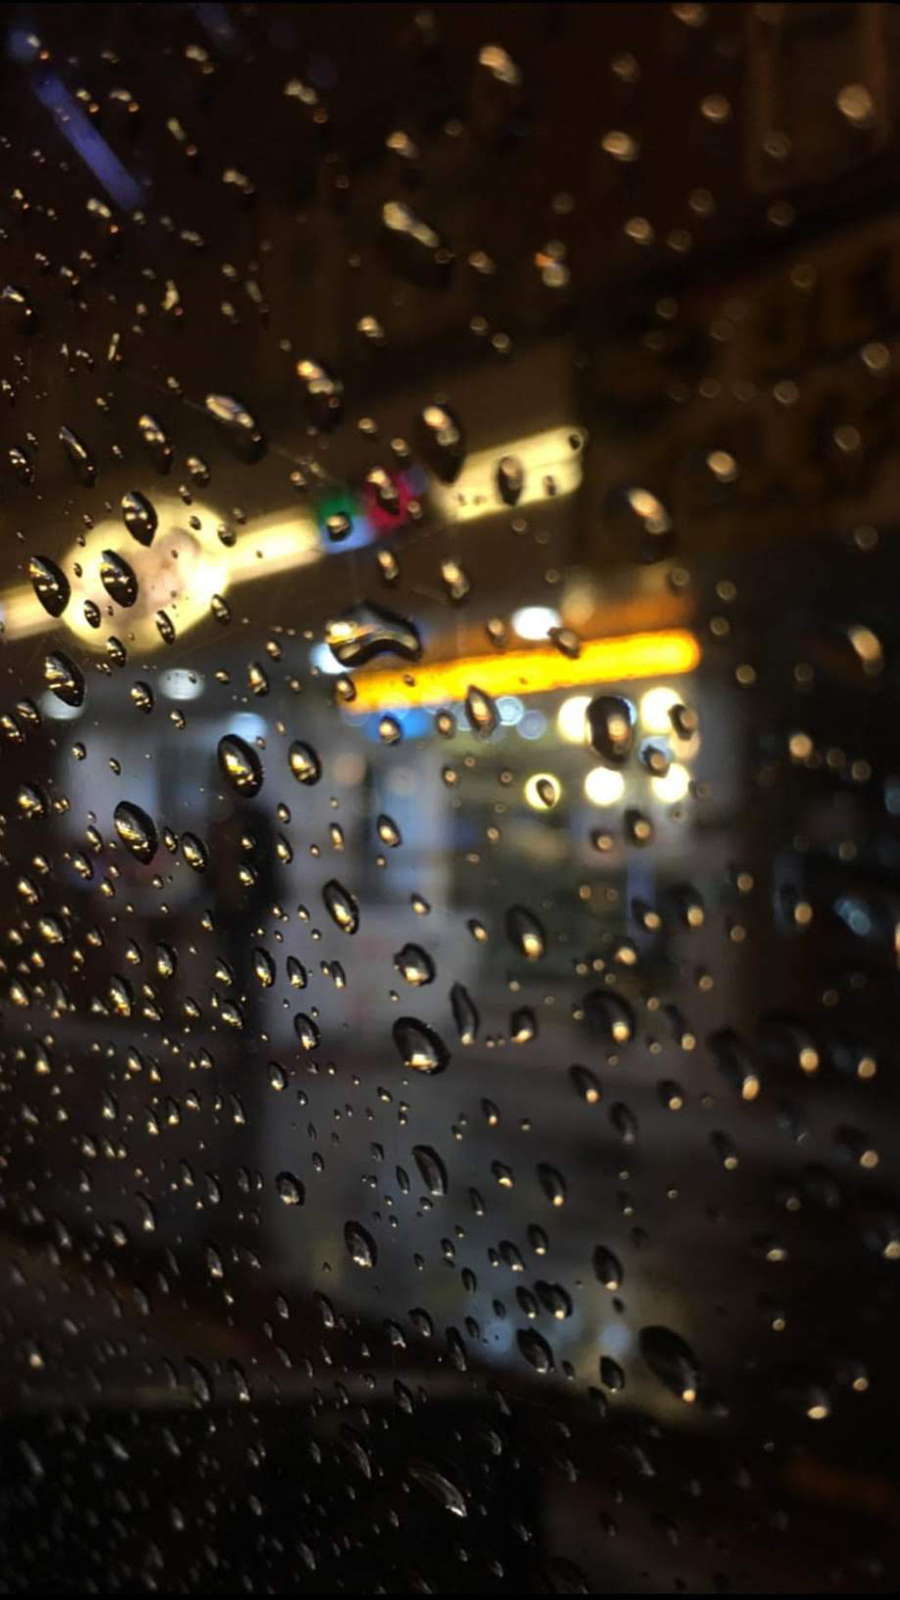 Glass and Rain Wallpapers Free Download